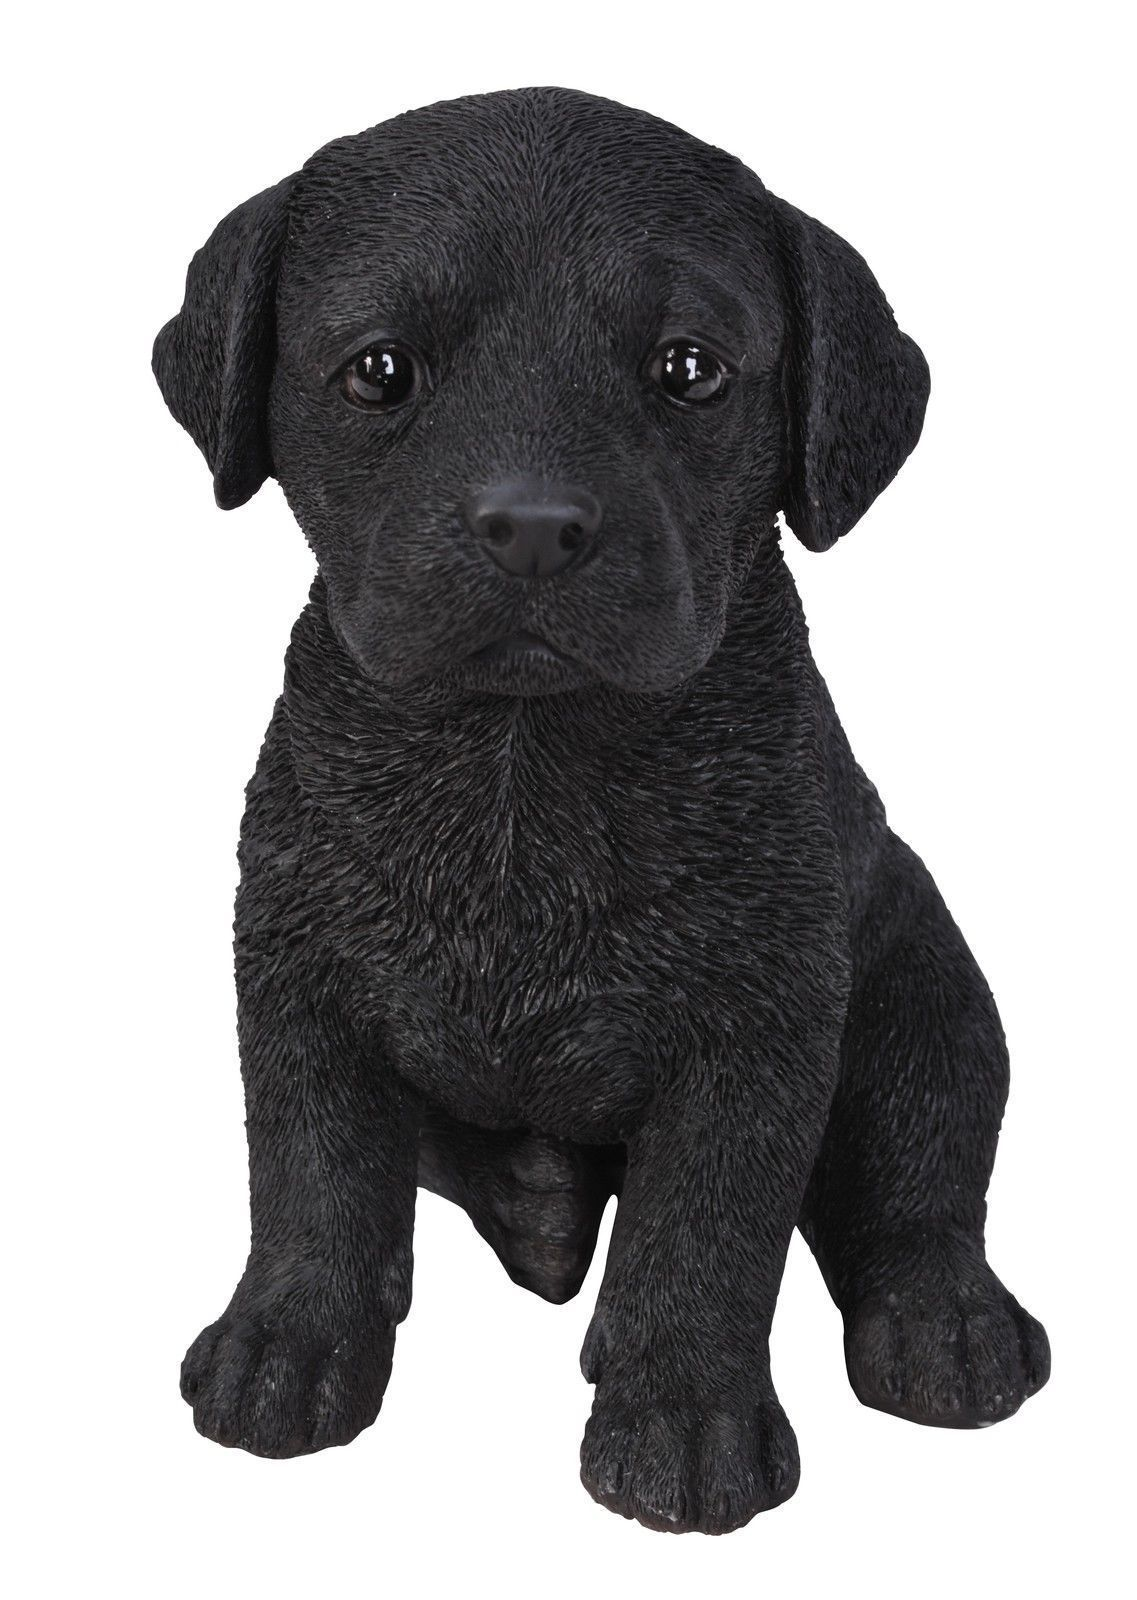 Black Labrador Puppy Pet Pals Vivid Arts Black labrador